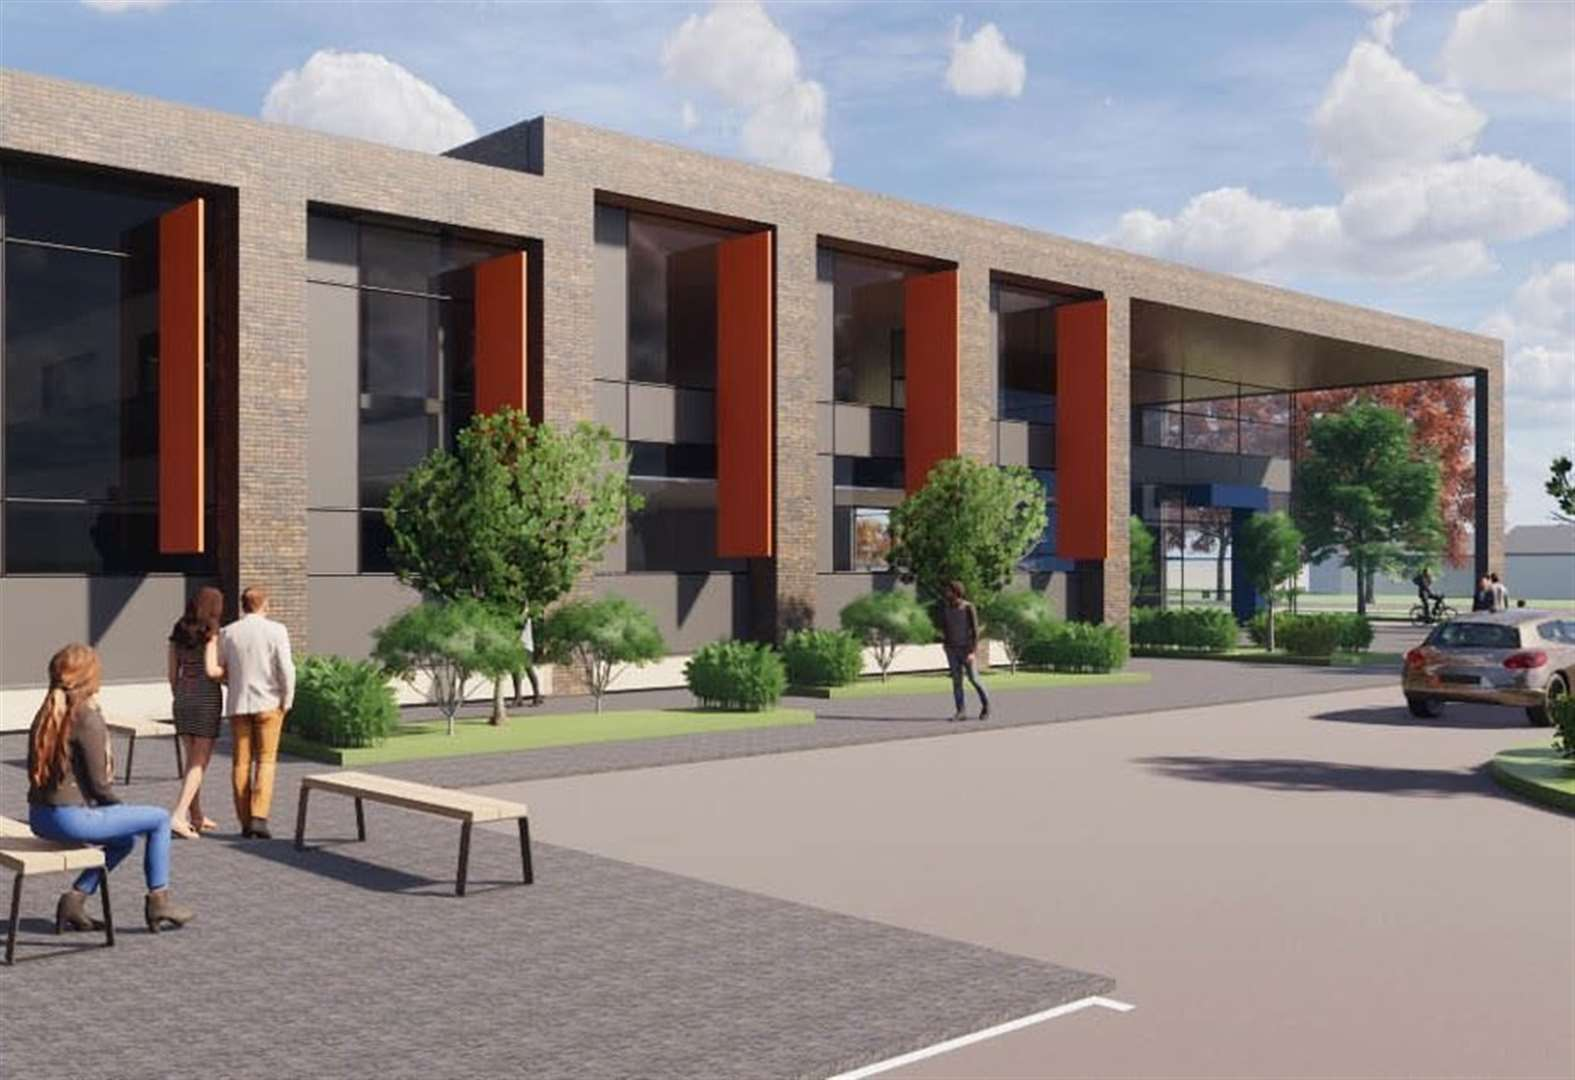 Plans for town hub go on display